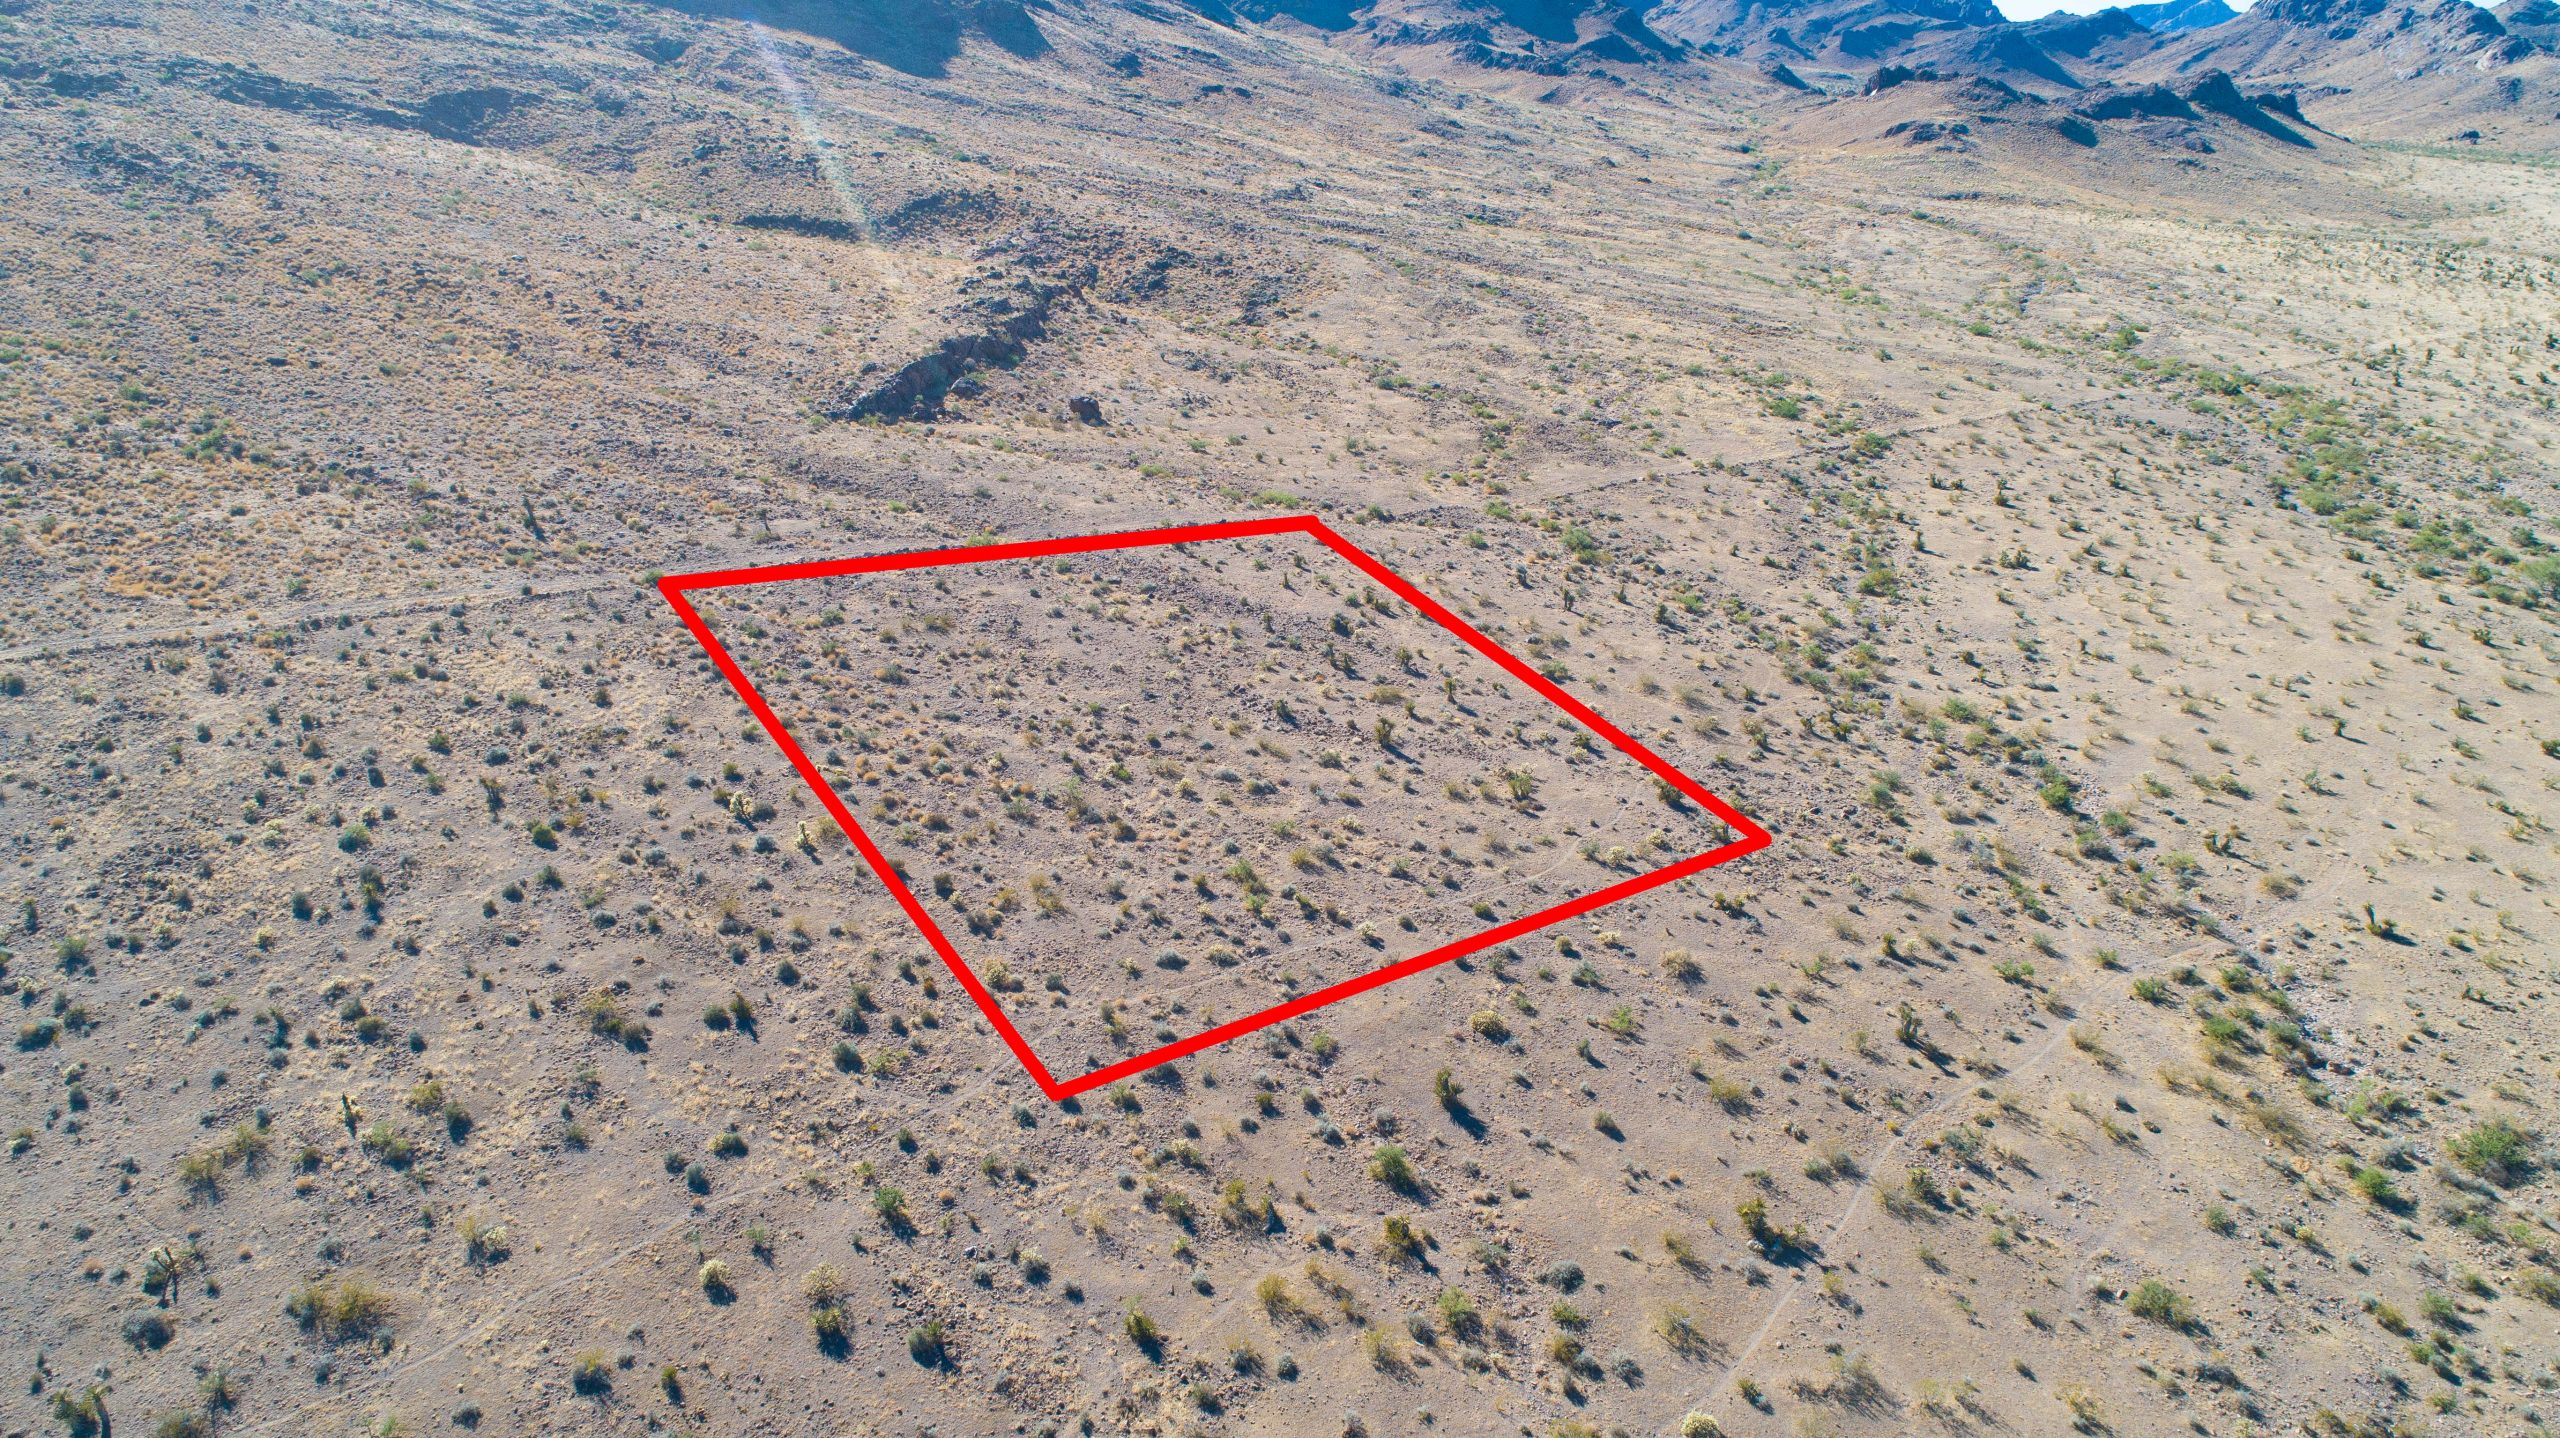 4916 S. Kaibab Rd. 2.35 Acres